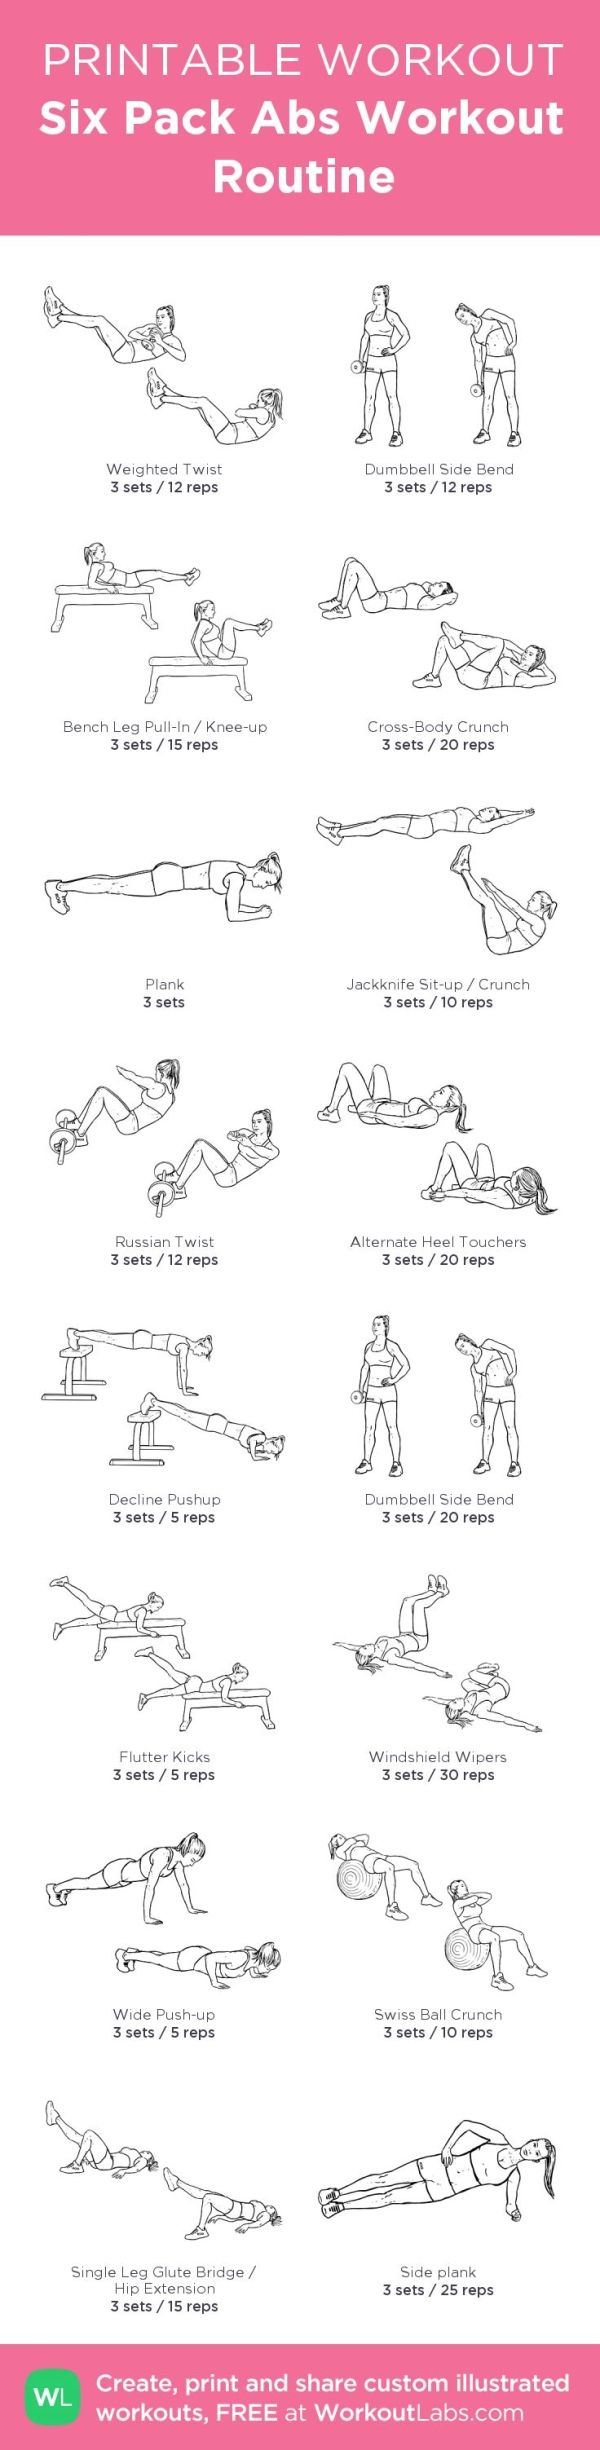 Six Pack Abs Workout Routine: my custom printable workout by @WorkoutLabs #workoutlabs #customworkout by Lovelylovely